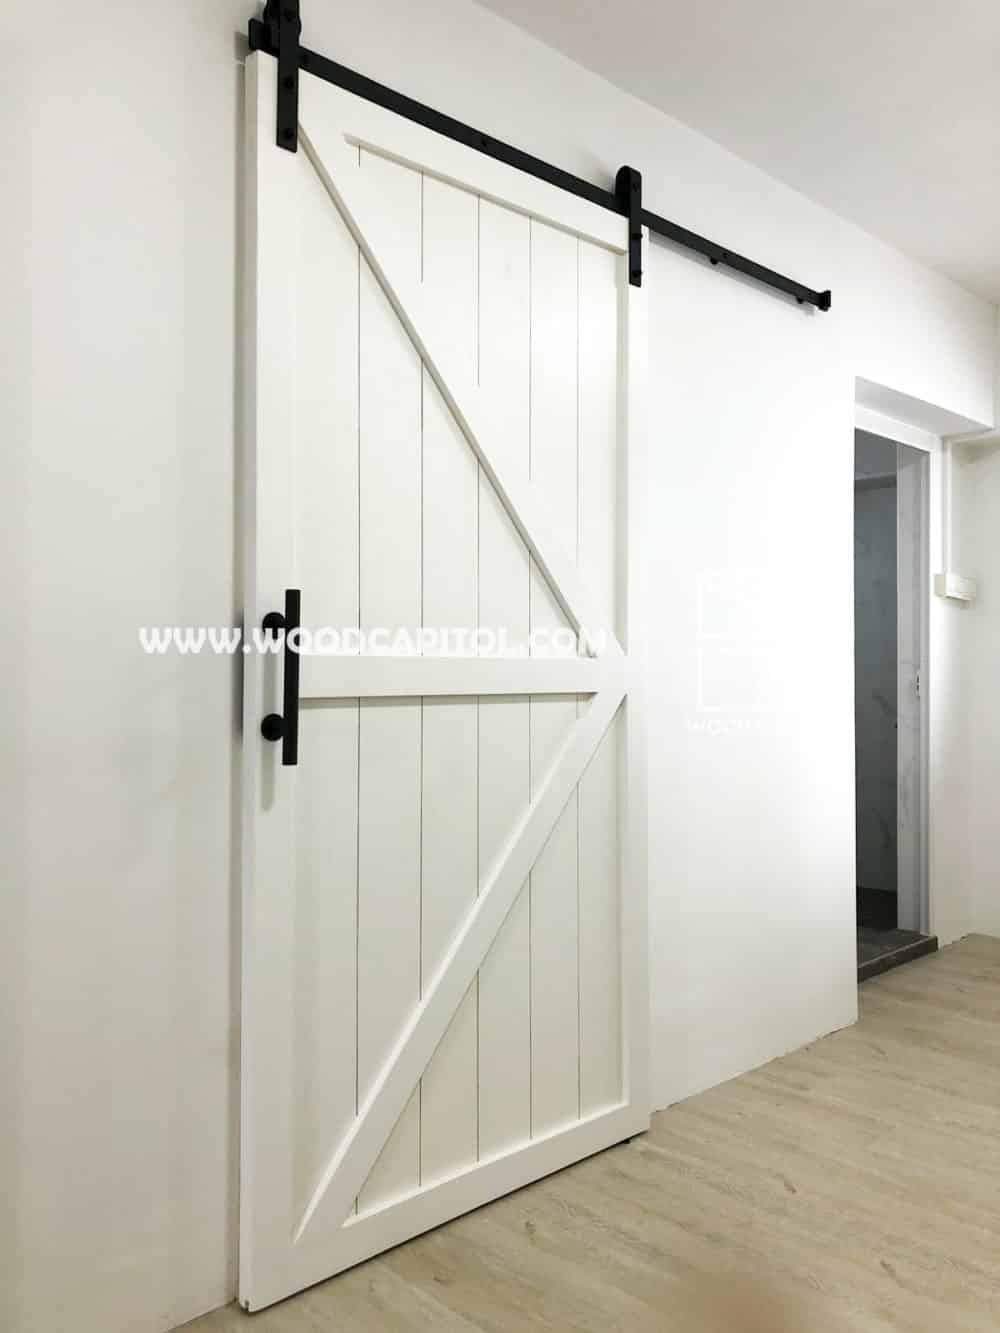 Wood Capitol White Arrow Barn Door 4